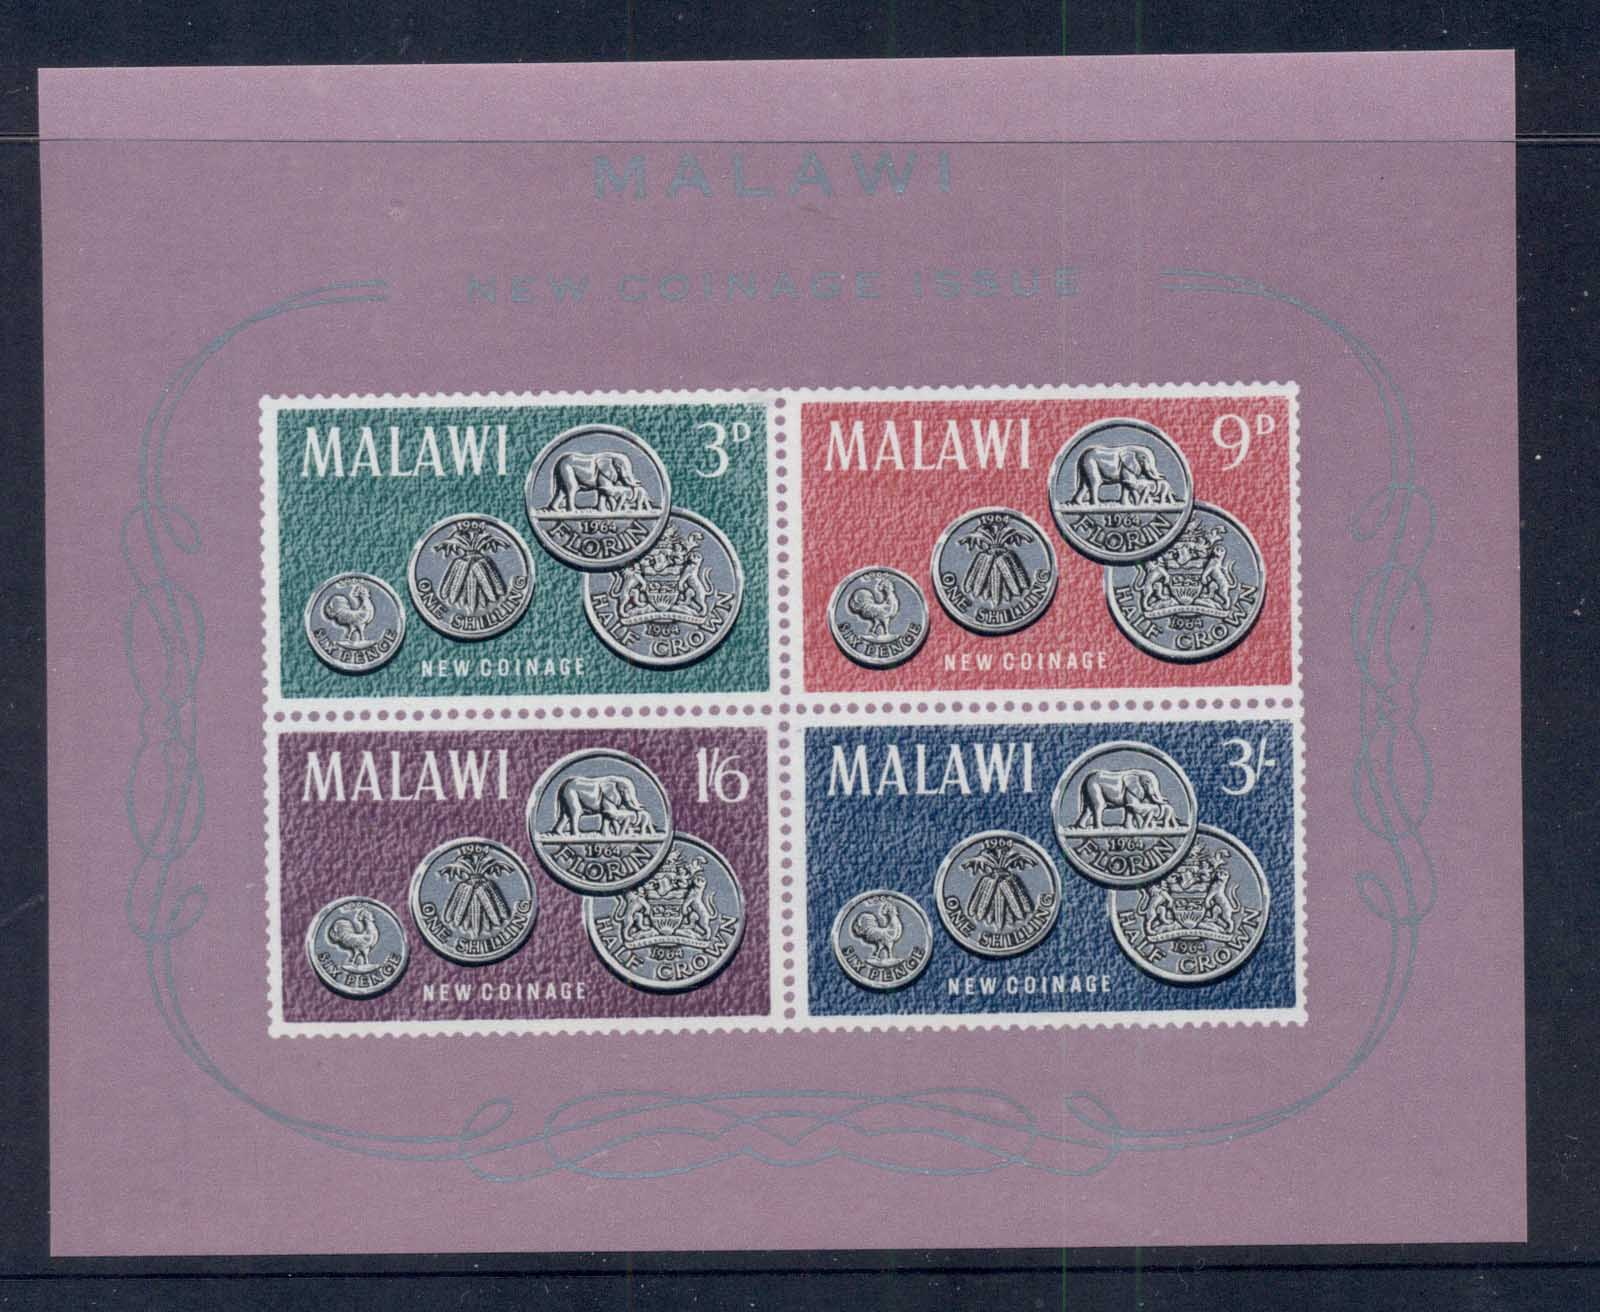 Malawi 1965 First Coinage Ms MUH